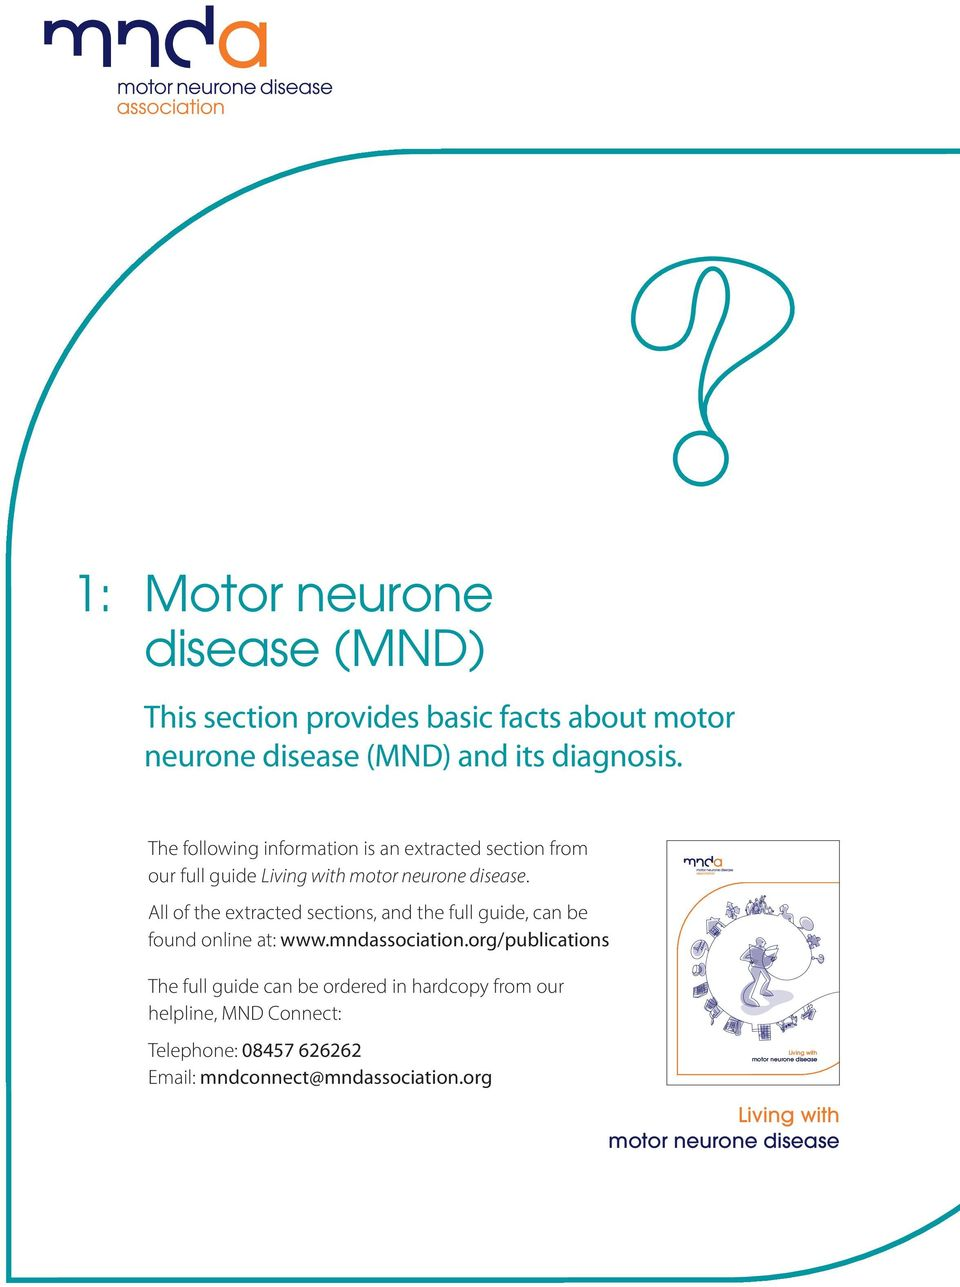 All of the extracted sections, and the full guide, can be found online at: www.mndassociation.